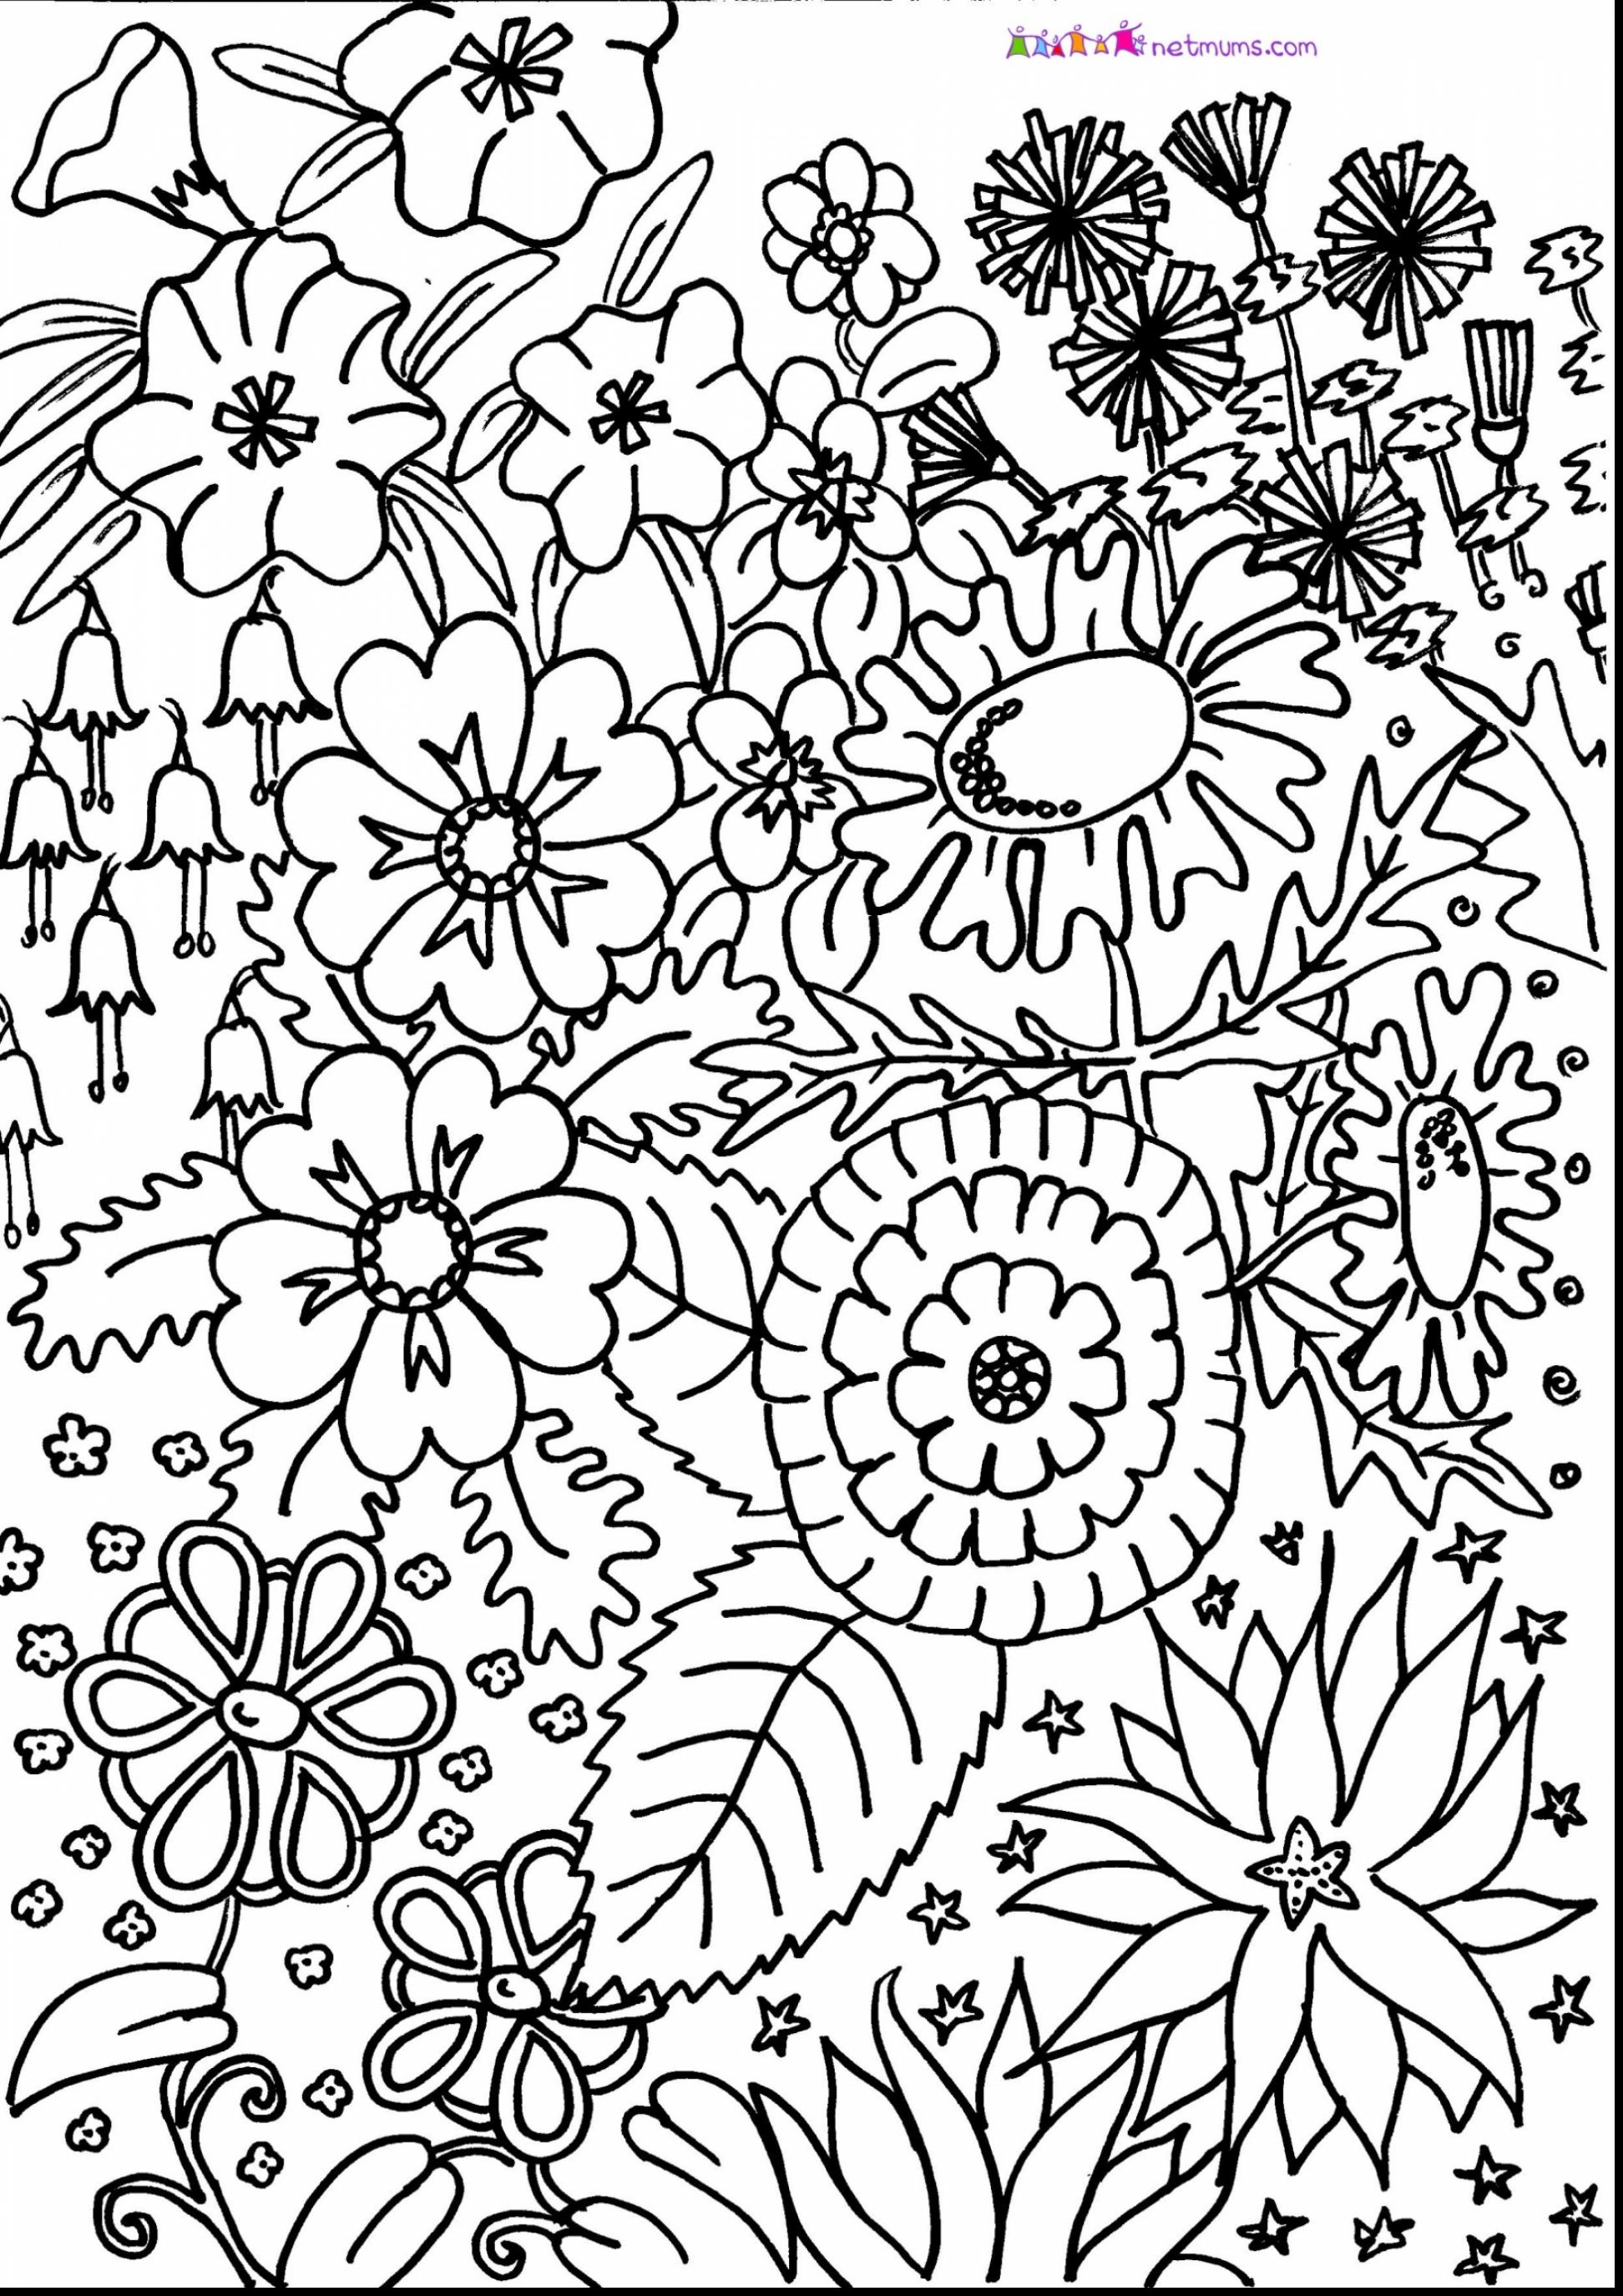 flower pattern coloring pages - photo#22